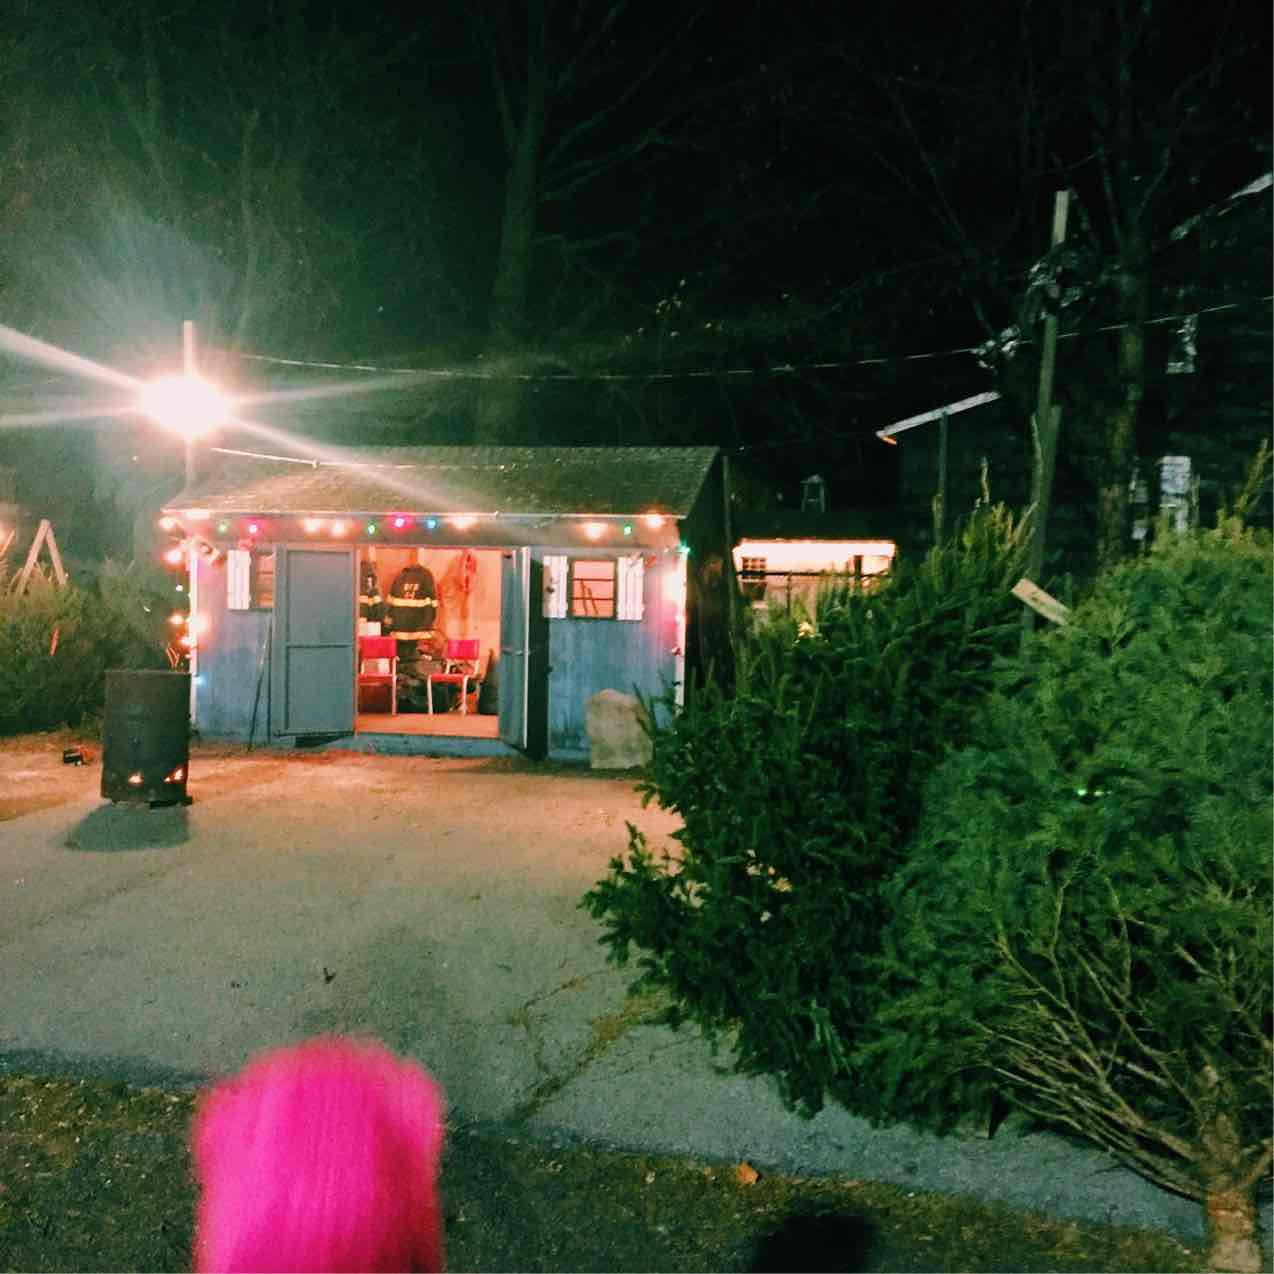 The Christmas tree shed from the Beacon Engine Fire Company next to Dogwood's parking lot.  Photo Credit: Katie Hellmuth Martin